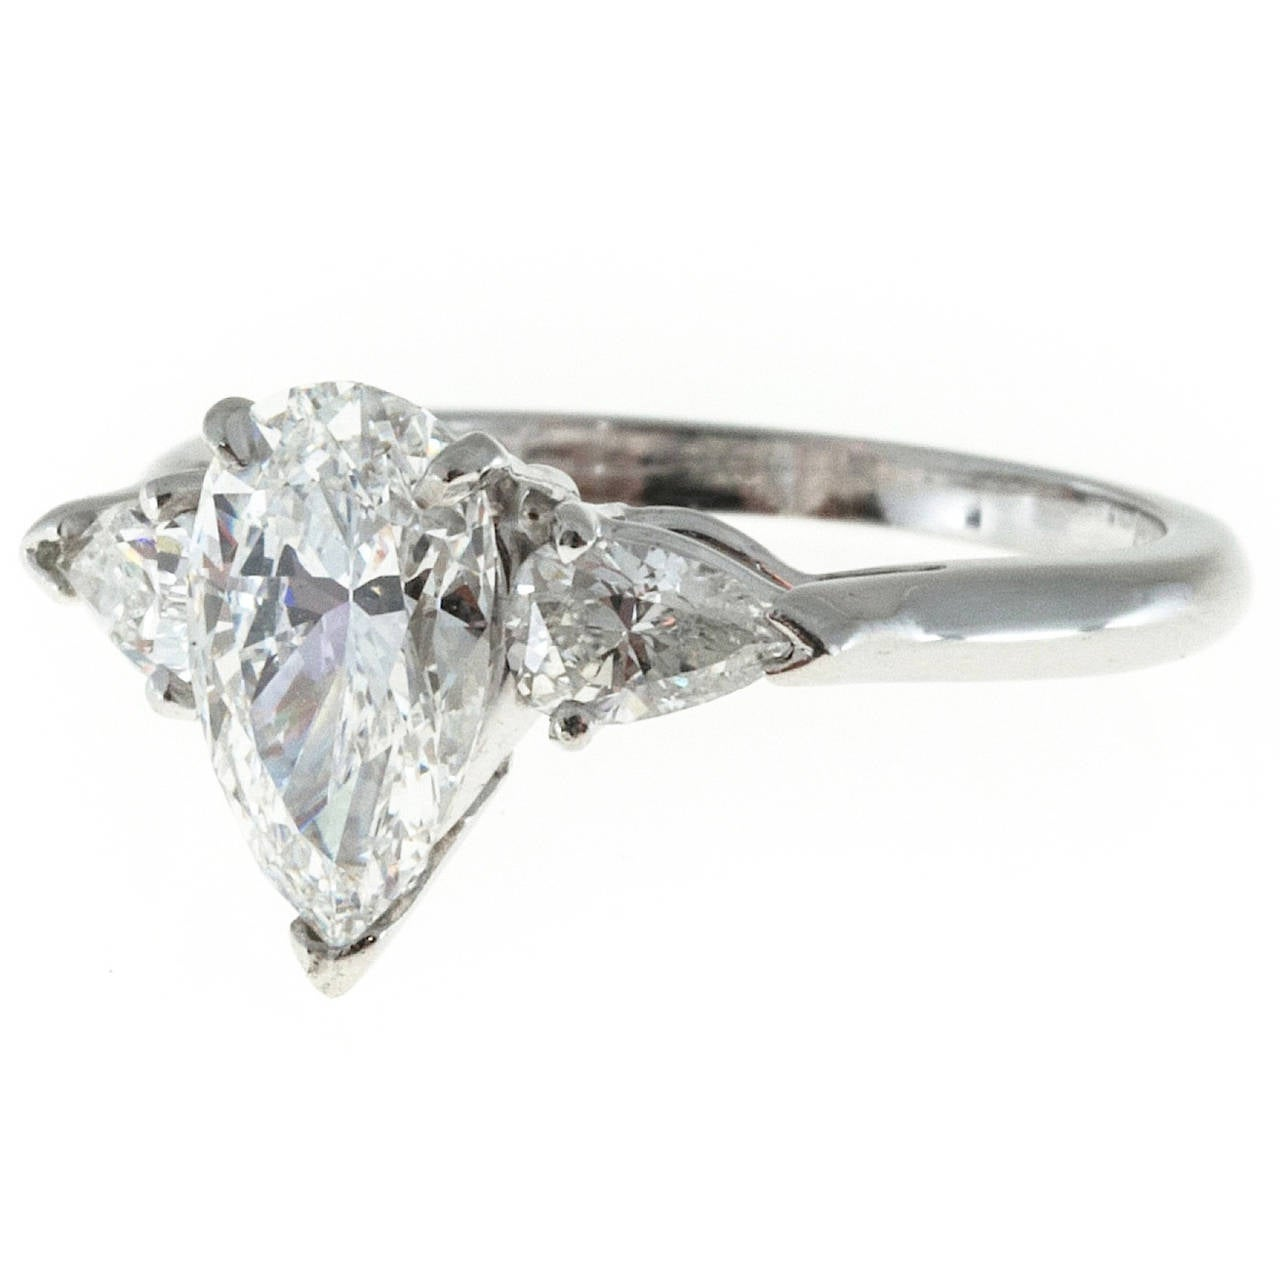 Pear Shaped 1 63 Carat Diamond Platinum Three Stone Ring For Sale at 1stdibs